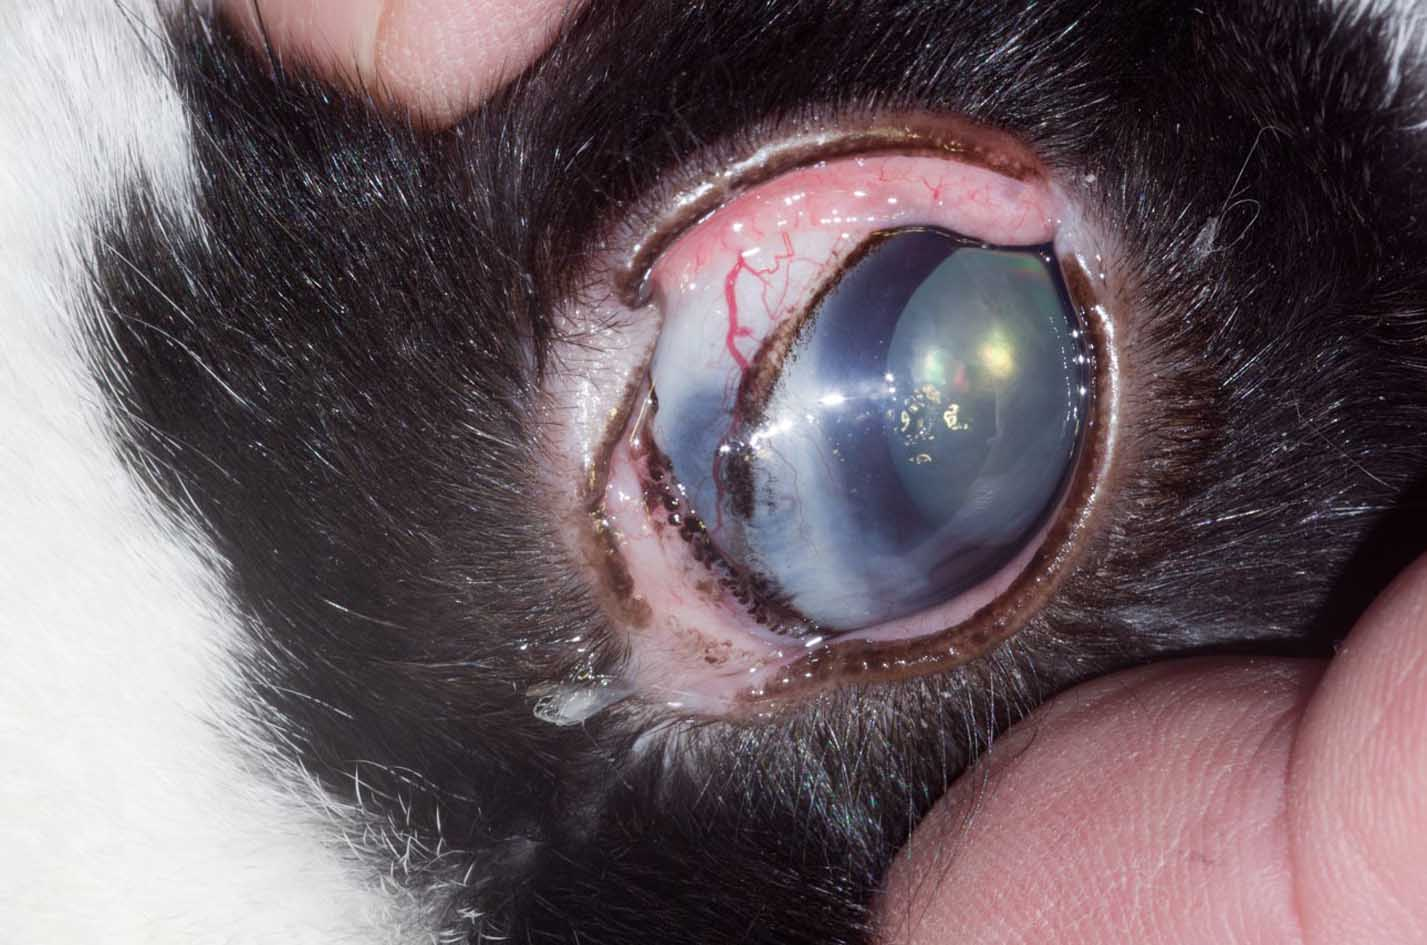 Glaucoma and staphyloma